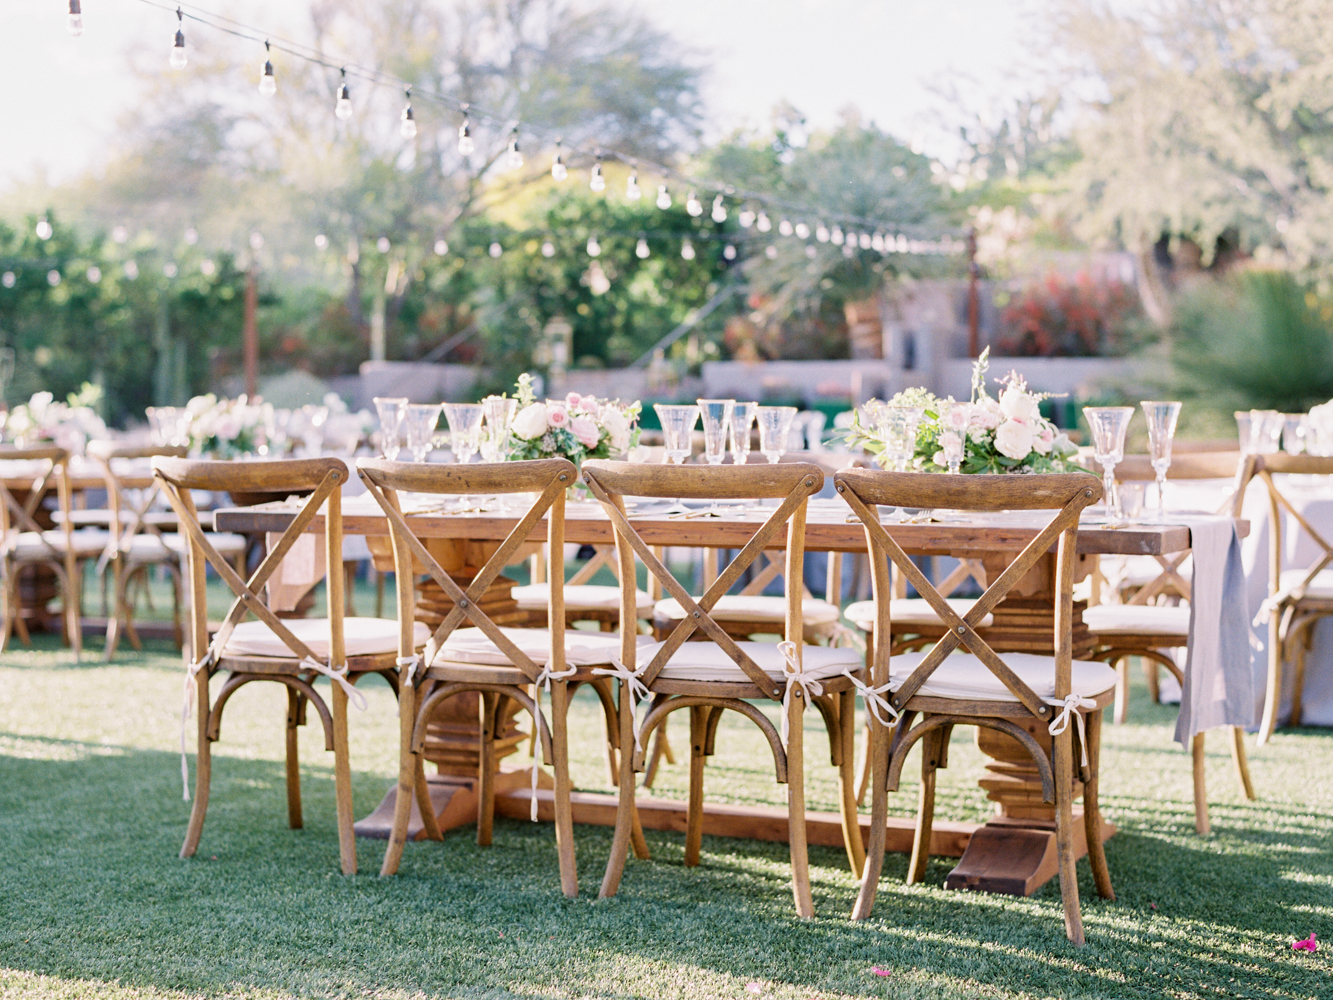 Enchanting Outdoor Wedding - Imoni Events